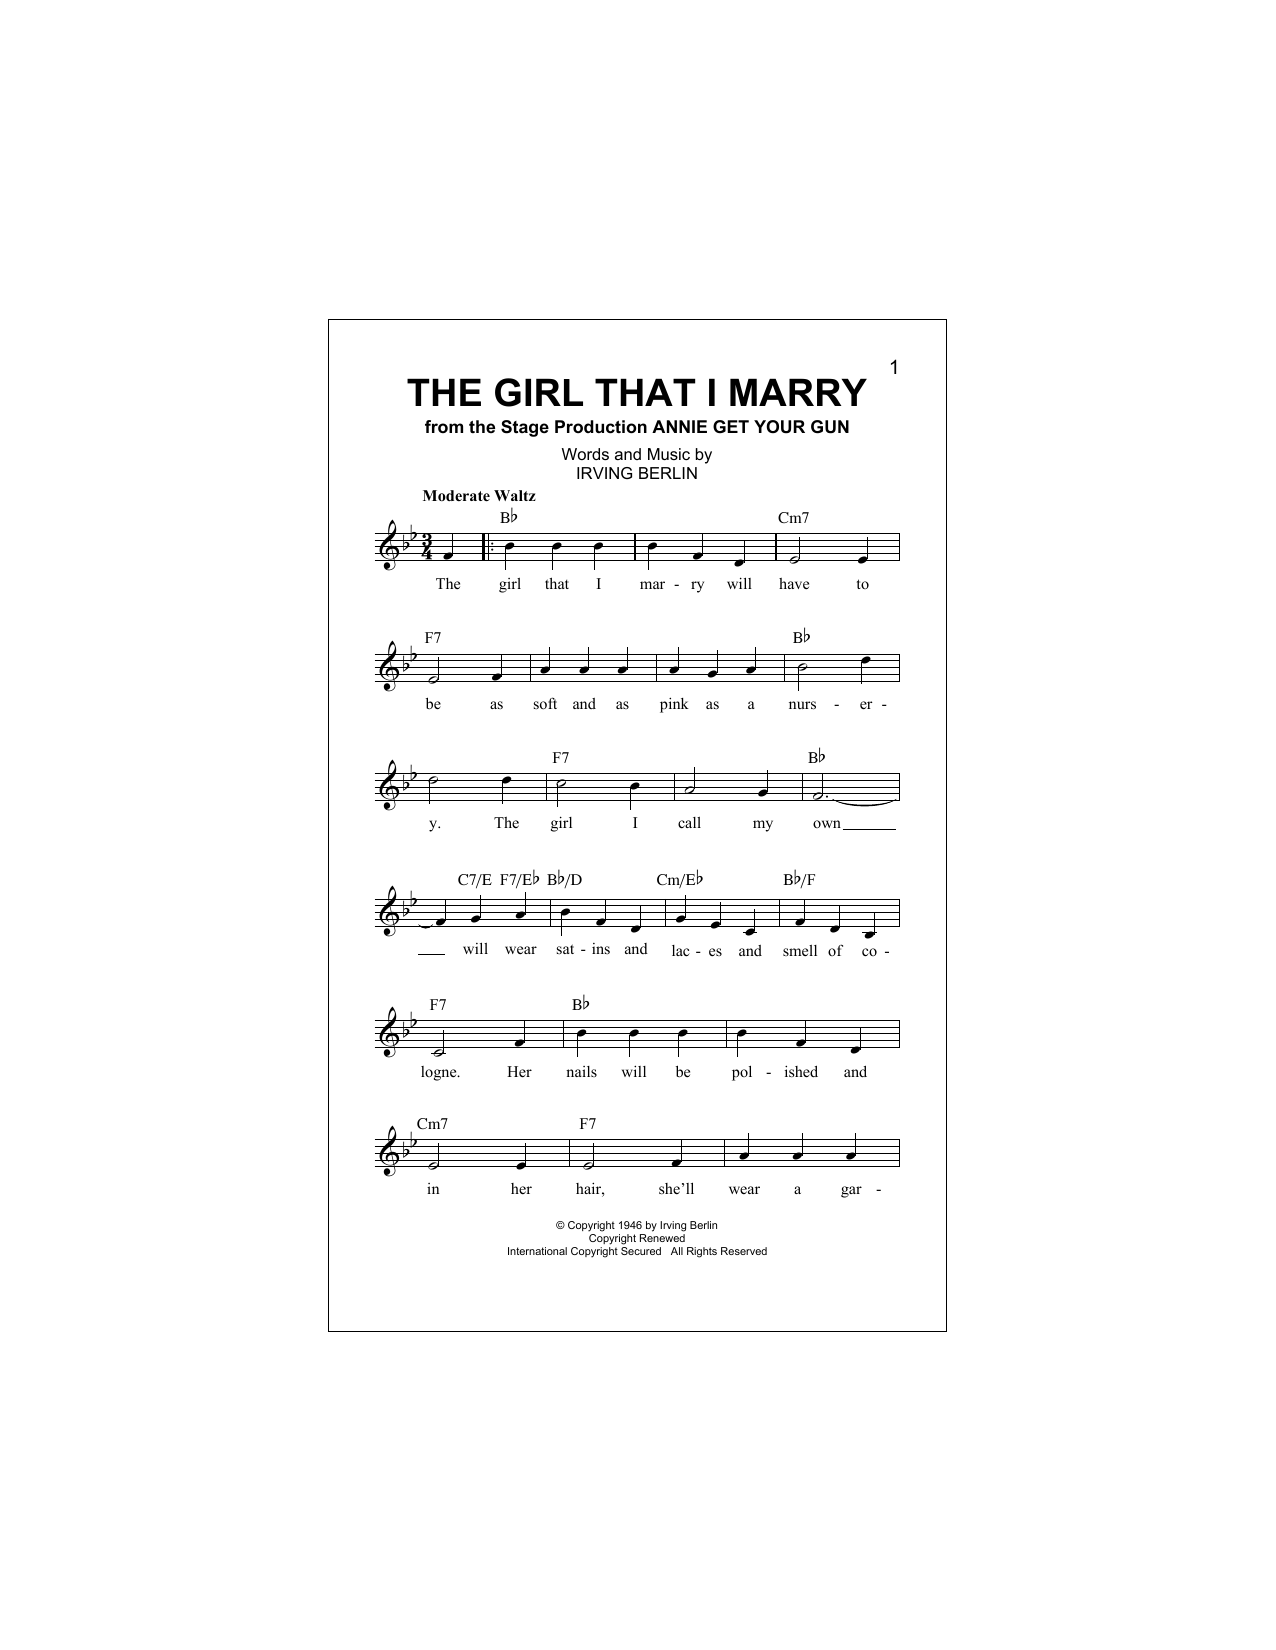 The Girl That I Marry Sheet Music